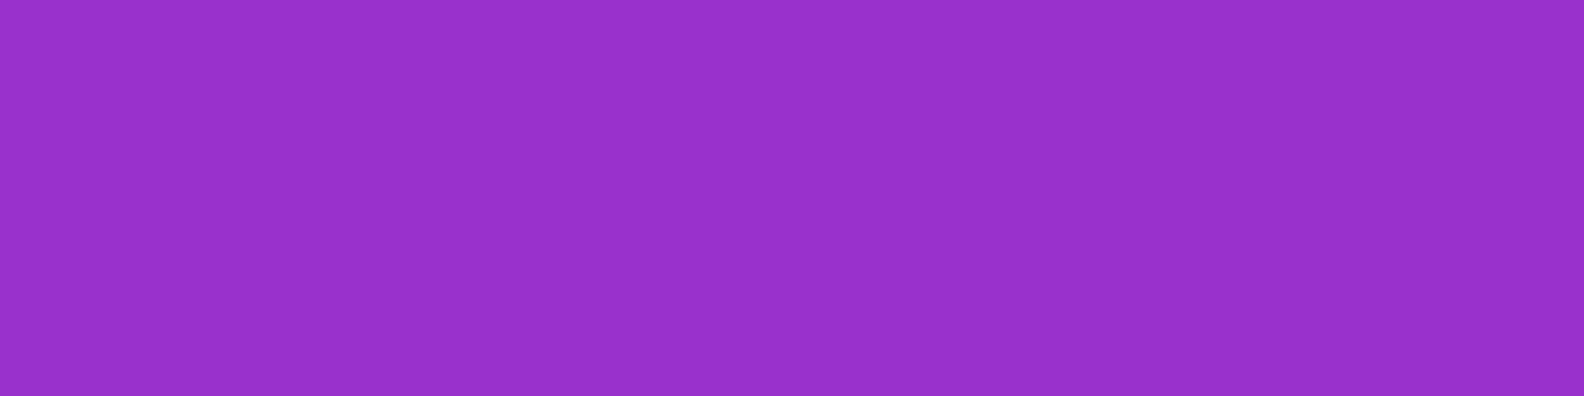 1584x396 Dark Orchid Solid Color Background